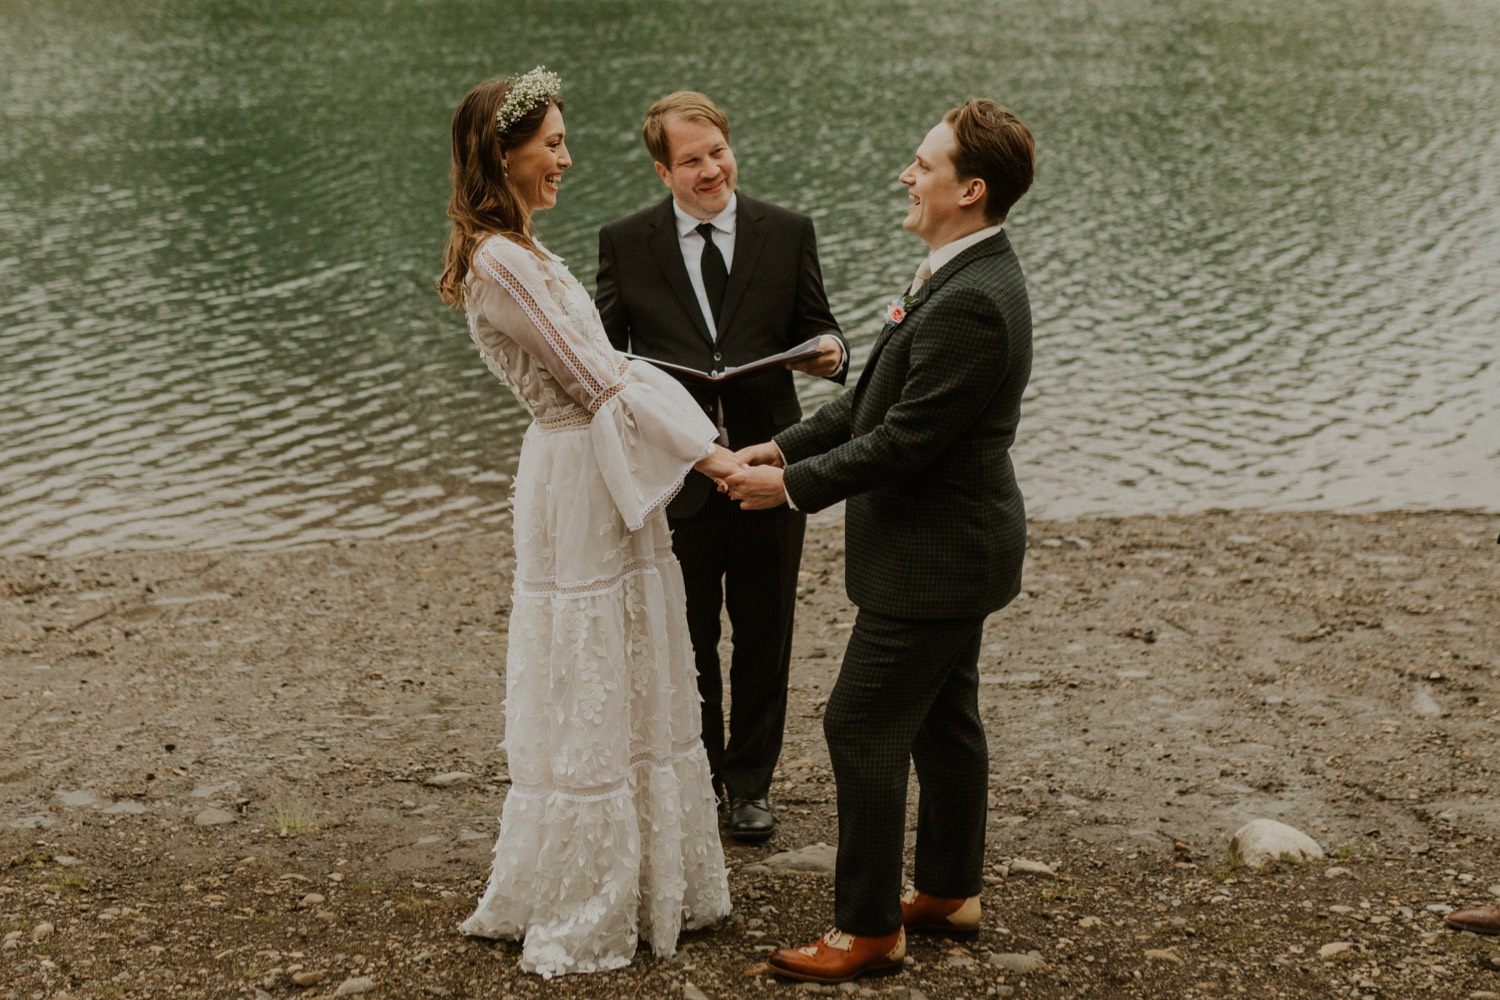 A Kananaskis Lake Elopement in the beautiful Canadian Rockies emotional photo of vows during ceremony